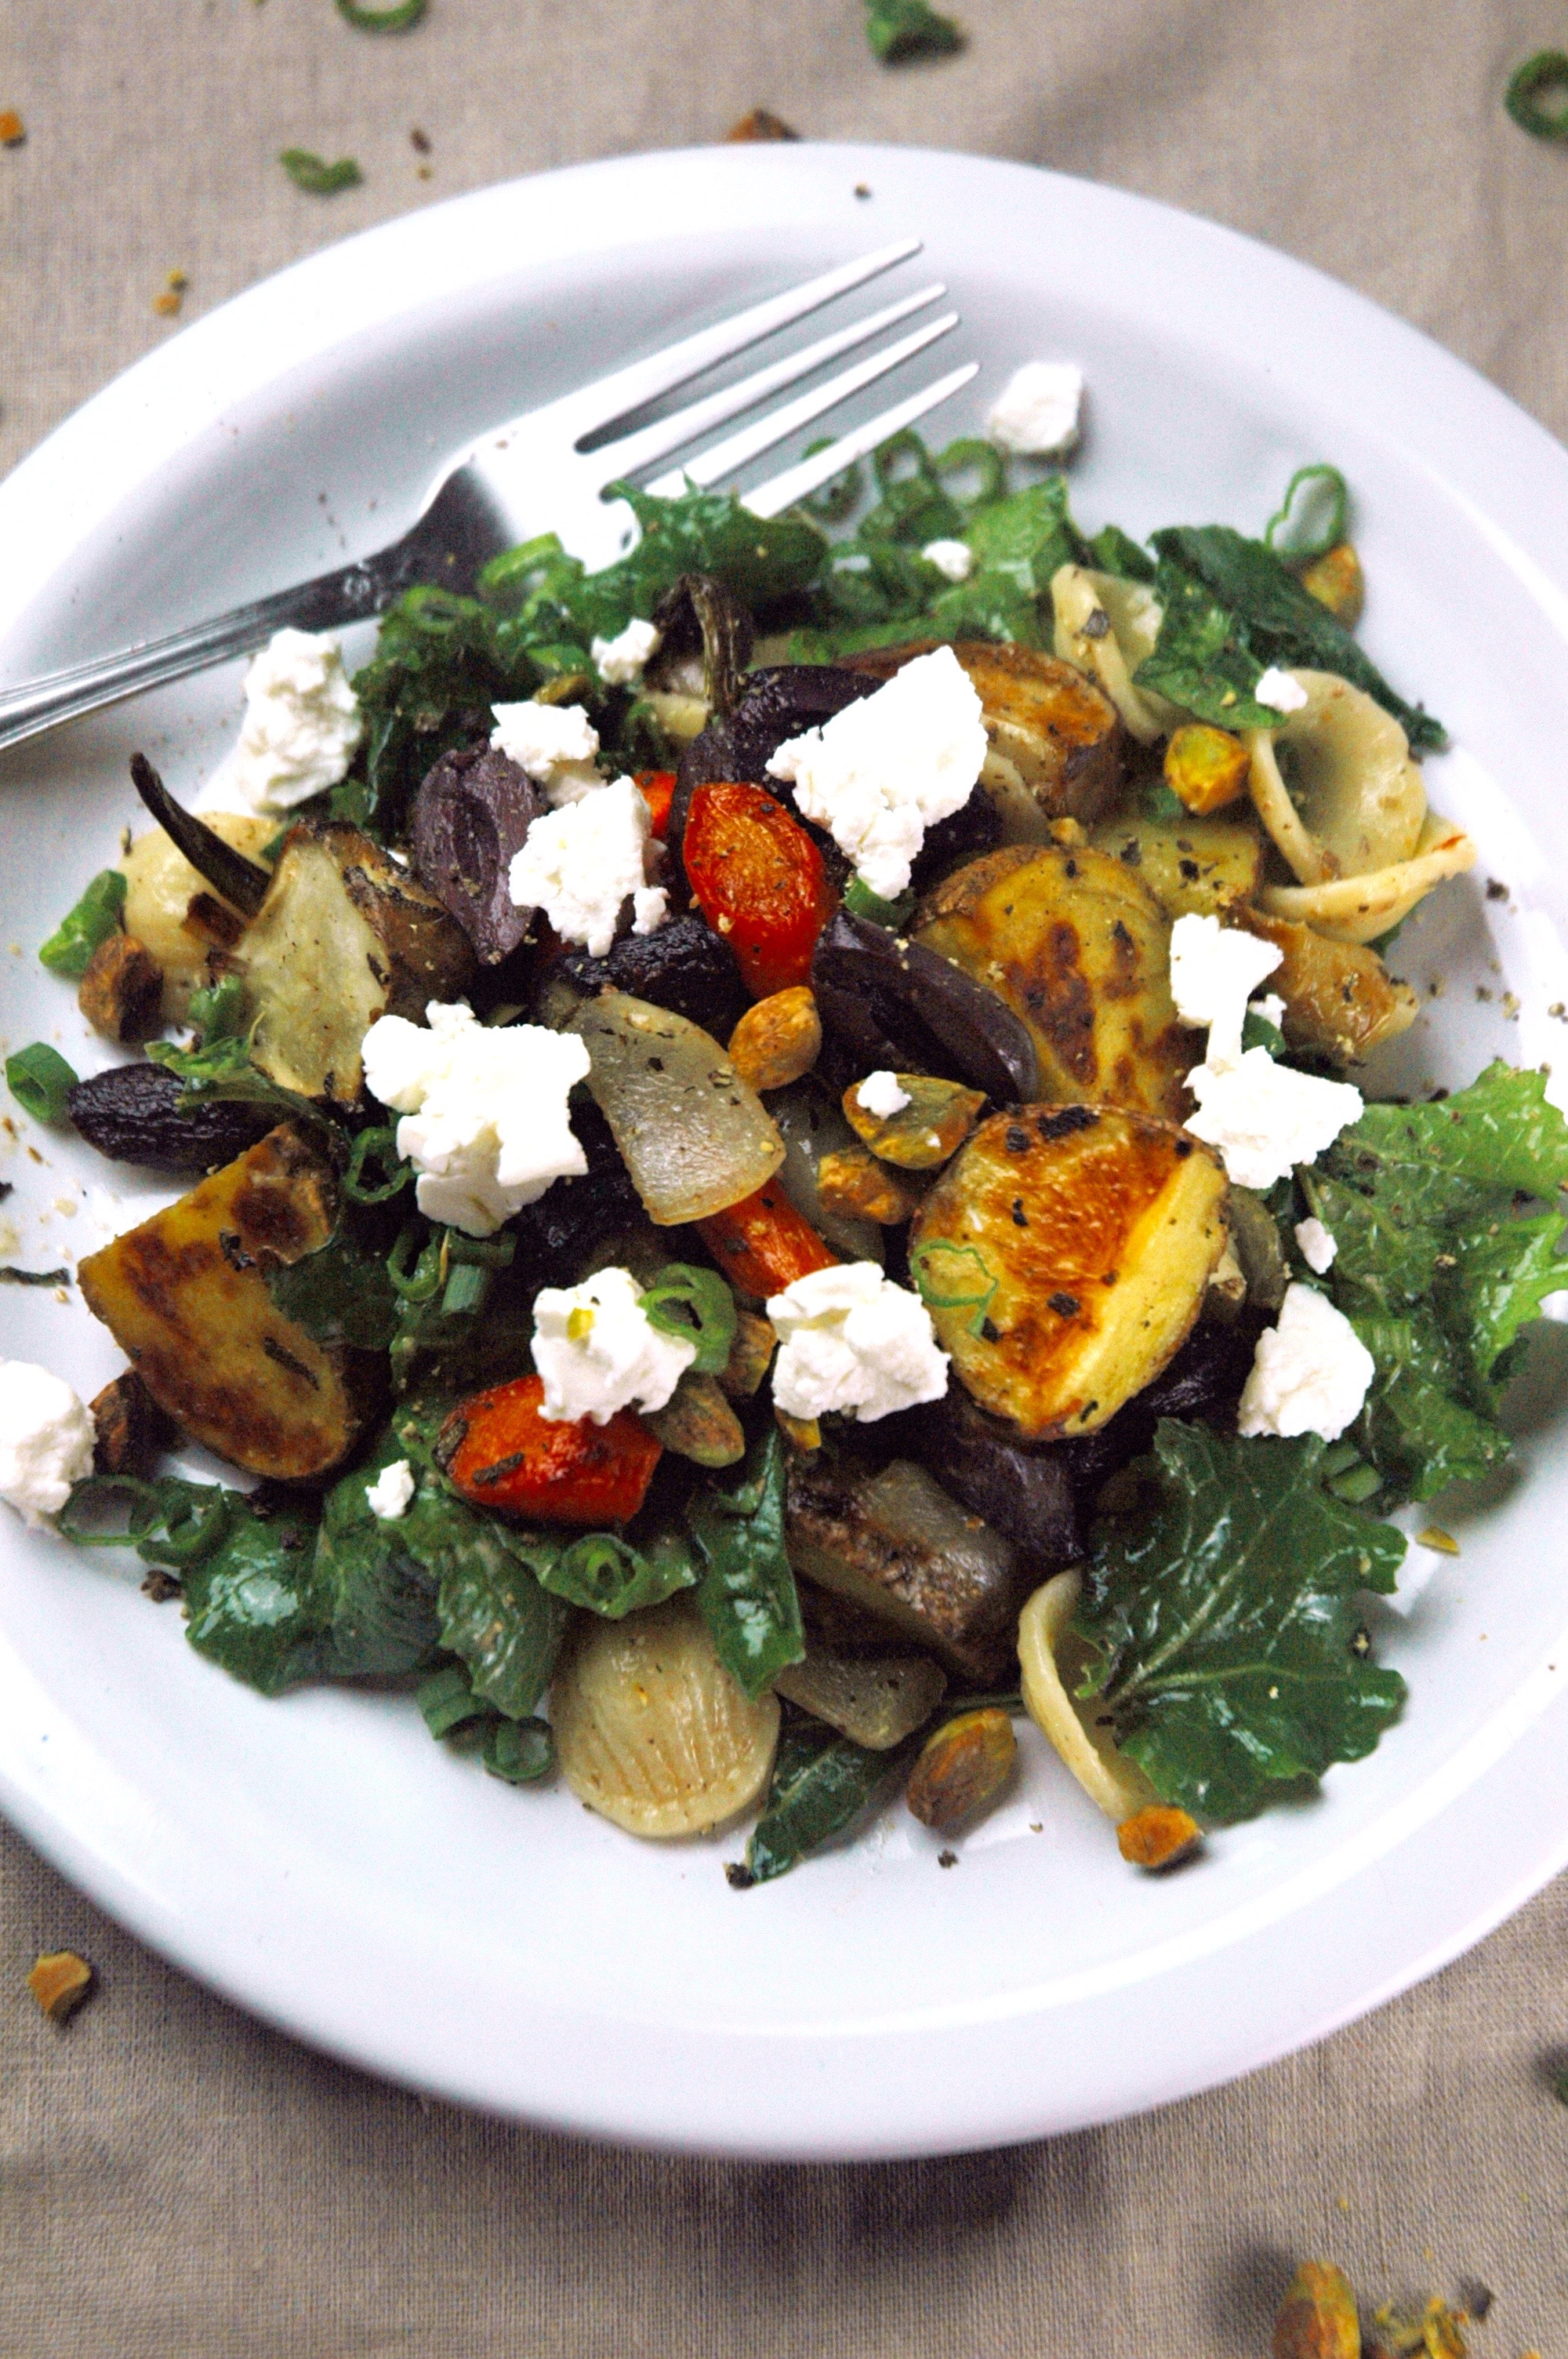 Rustic Kale Salad with Herb-Roasted Root Vegetables